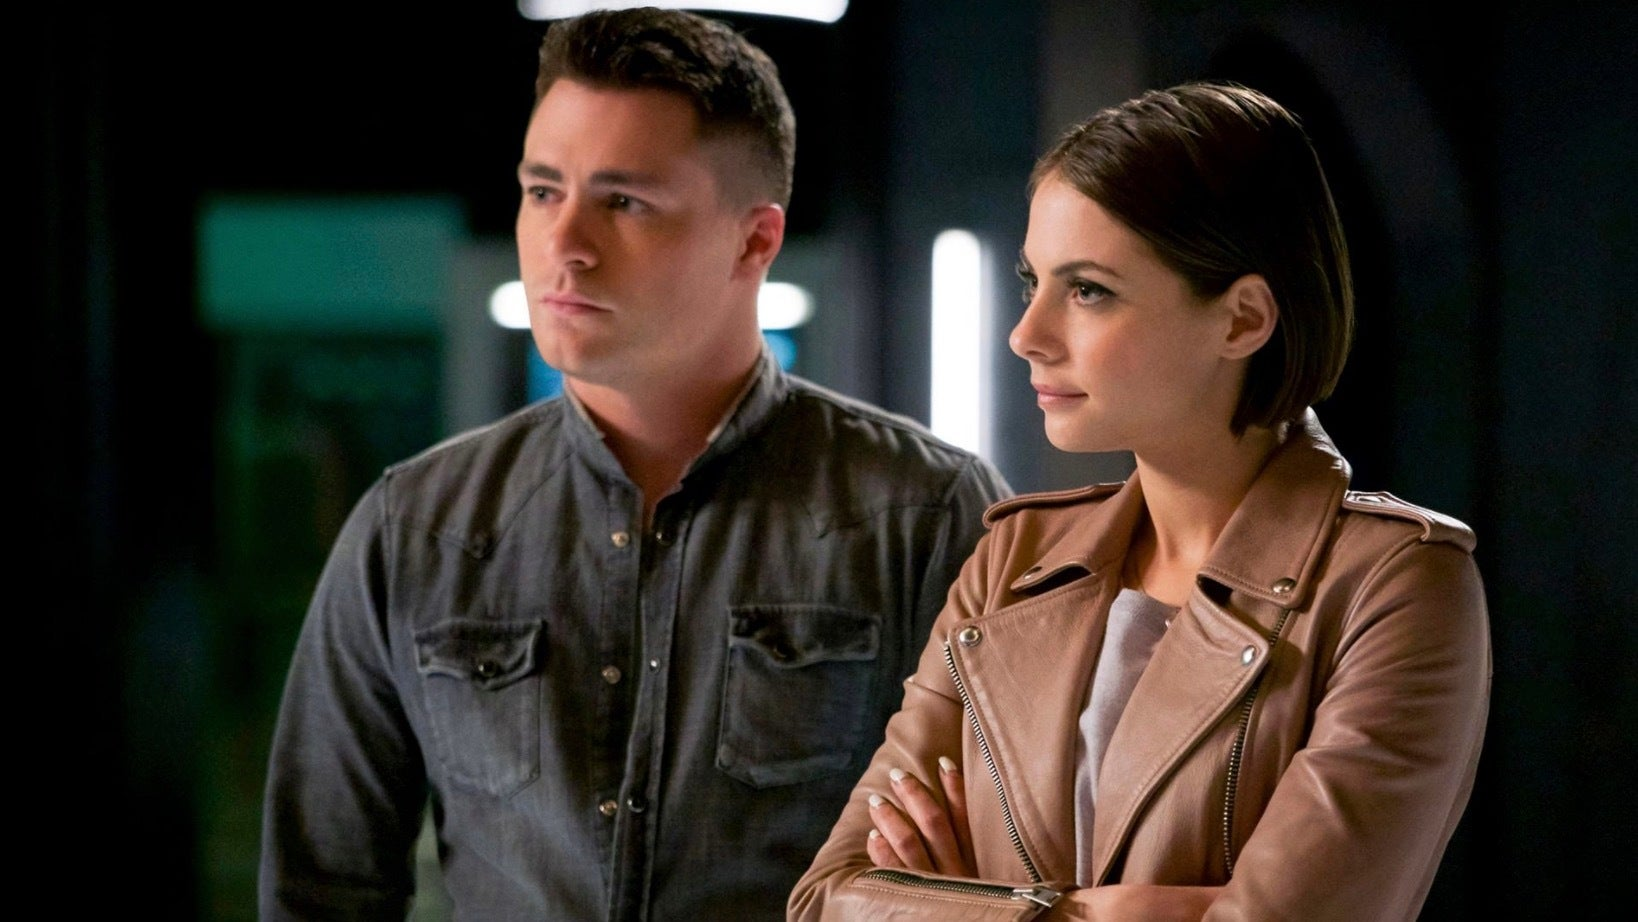 Colton Haynes Is Returning To Arrow, Which Seems Odd, Doesn't It?